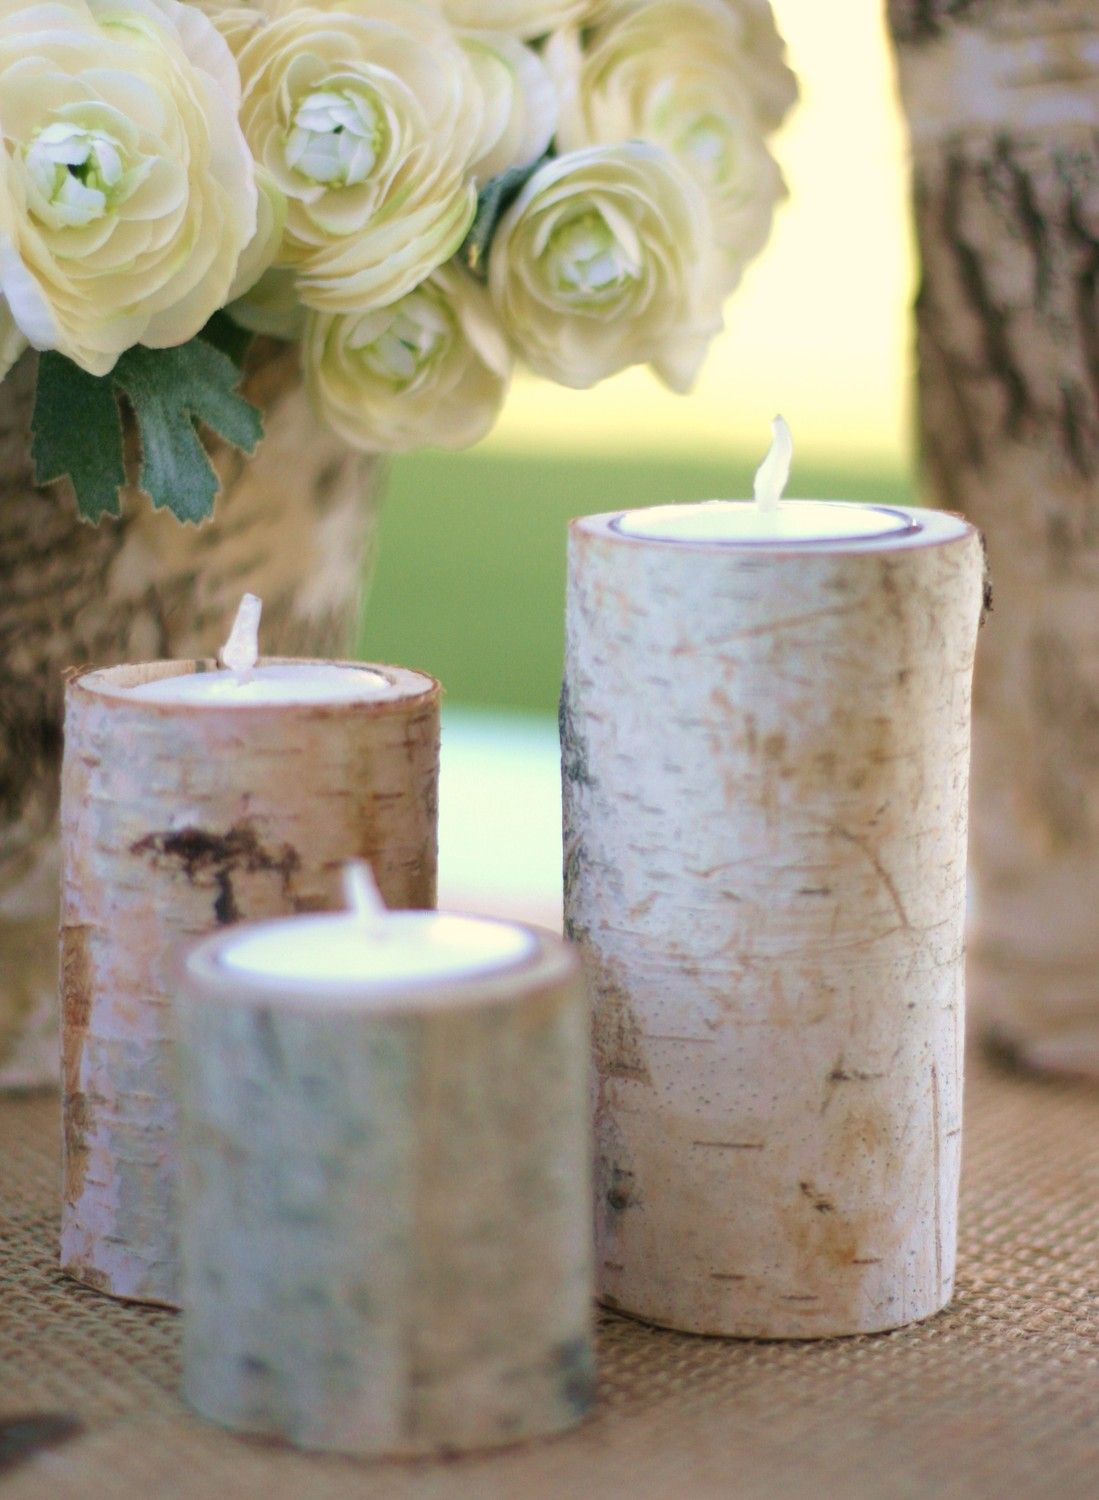 Home home decoration candles amp candle holders scented candles - Birch Bark Candle Holders Rustic Home Decor 16 50 Via Etsy